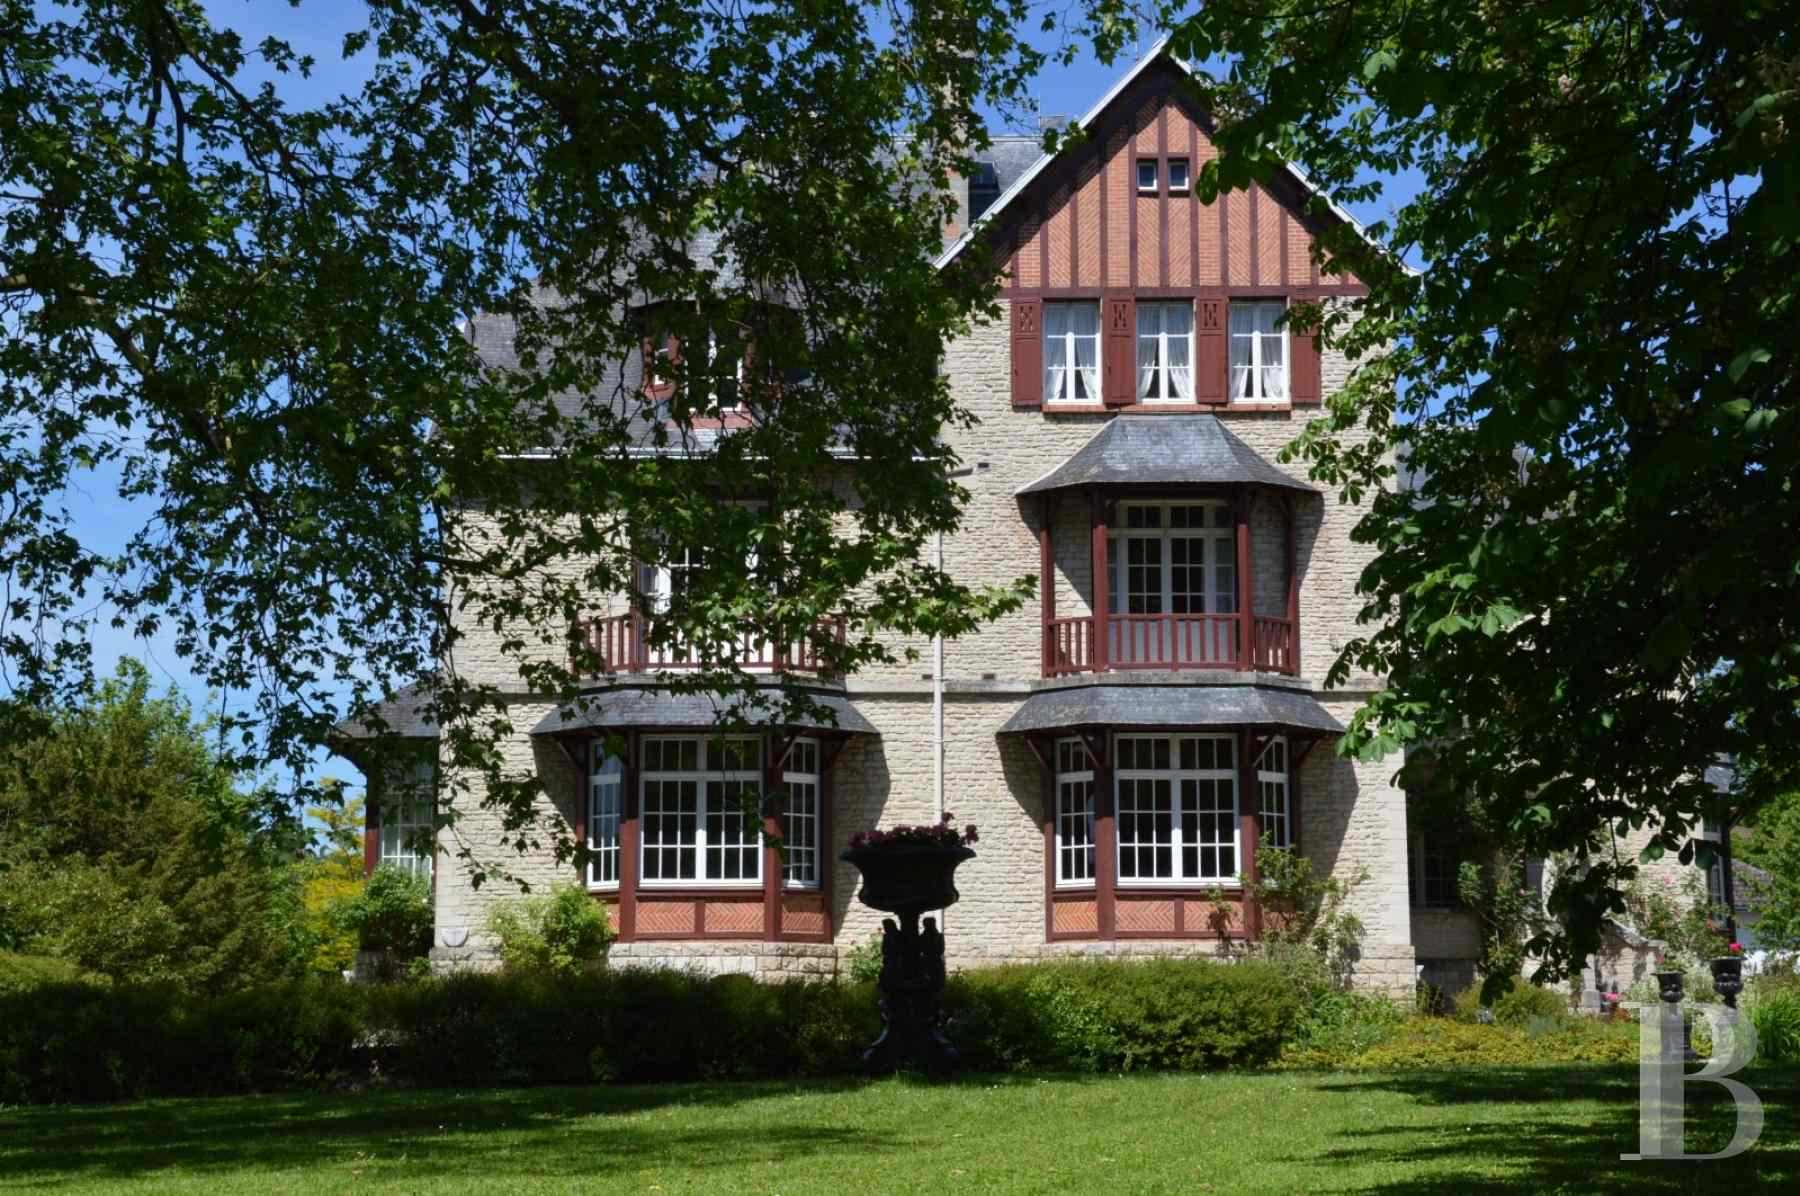 France mansions for sale champagne ardennes property aube - 12 zoom